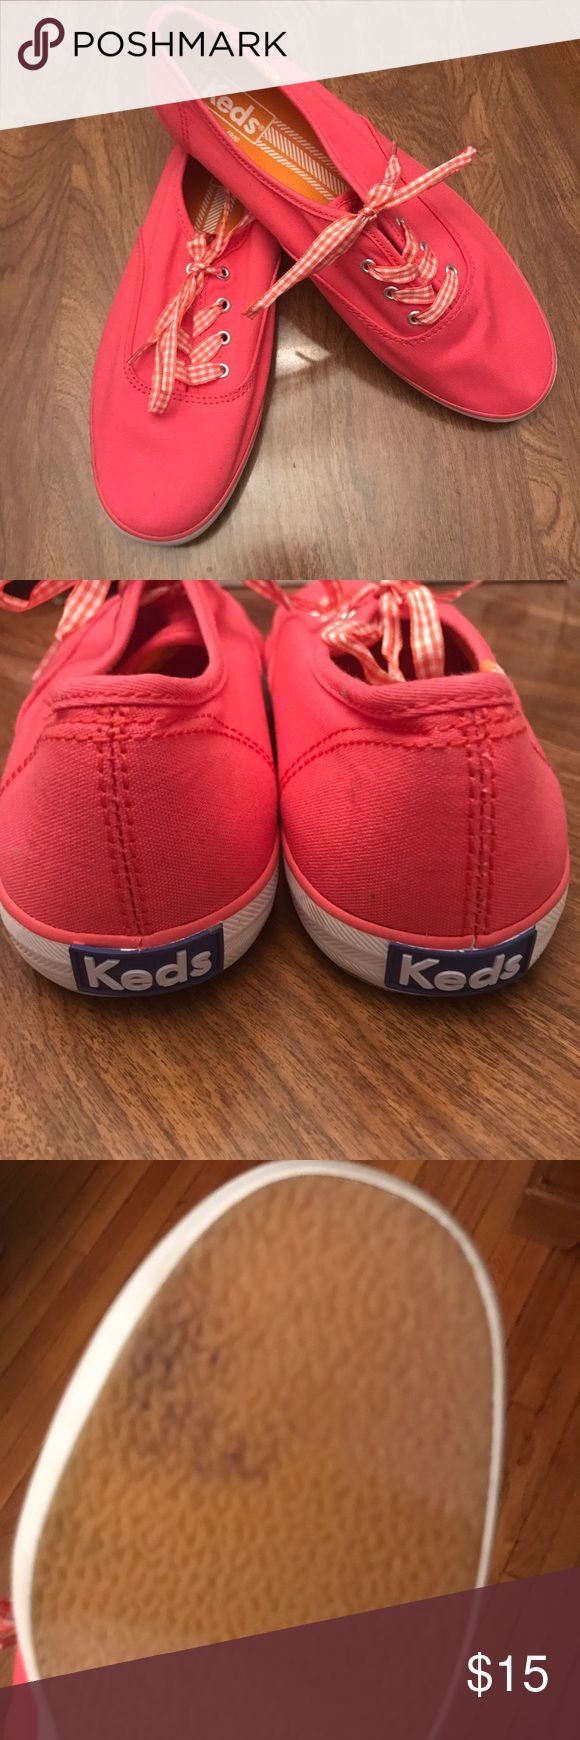 New Coral Pink Keds Champion Size 8 Adorable coral pink Keds Champion. Matching gingham  ribbon laces. Tried on and worn around the house but never wore them again. Size 8. Keds Shoes Sneakers